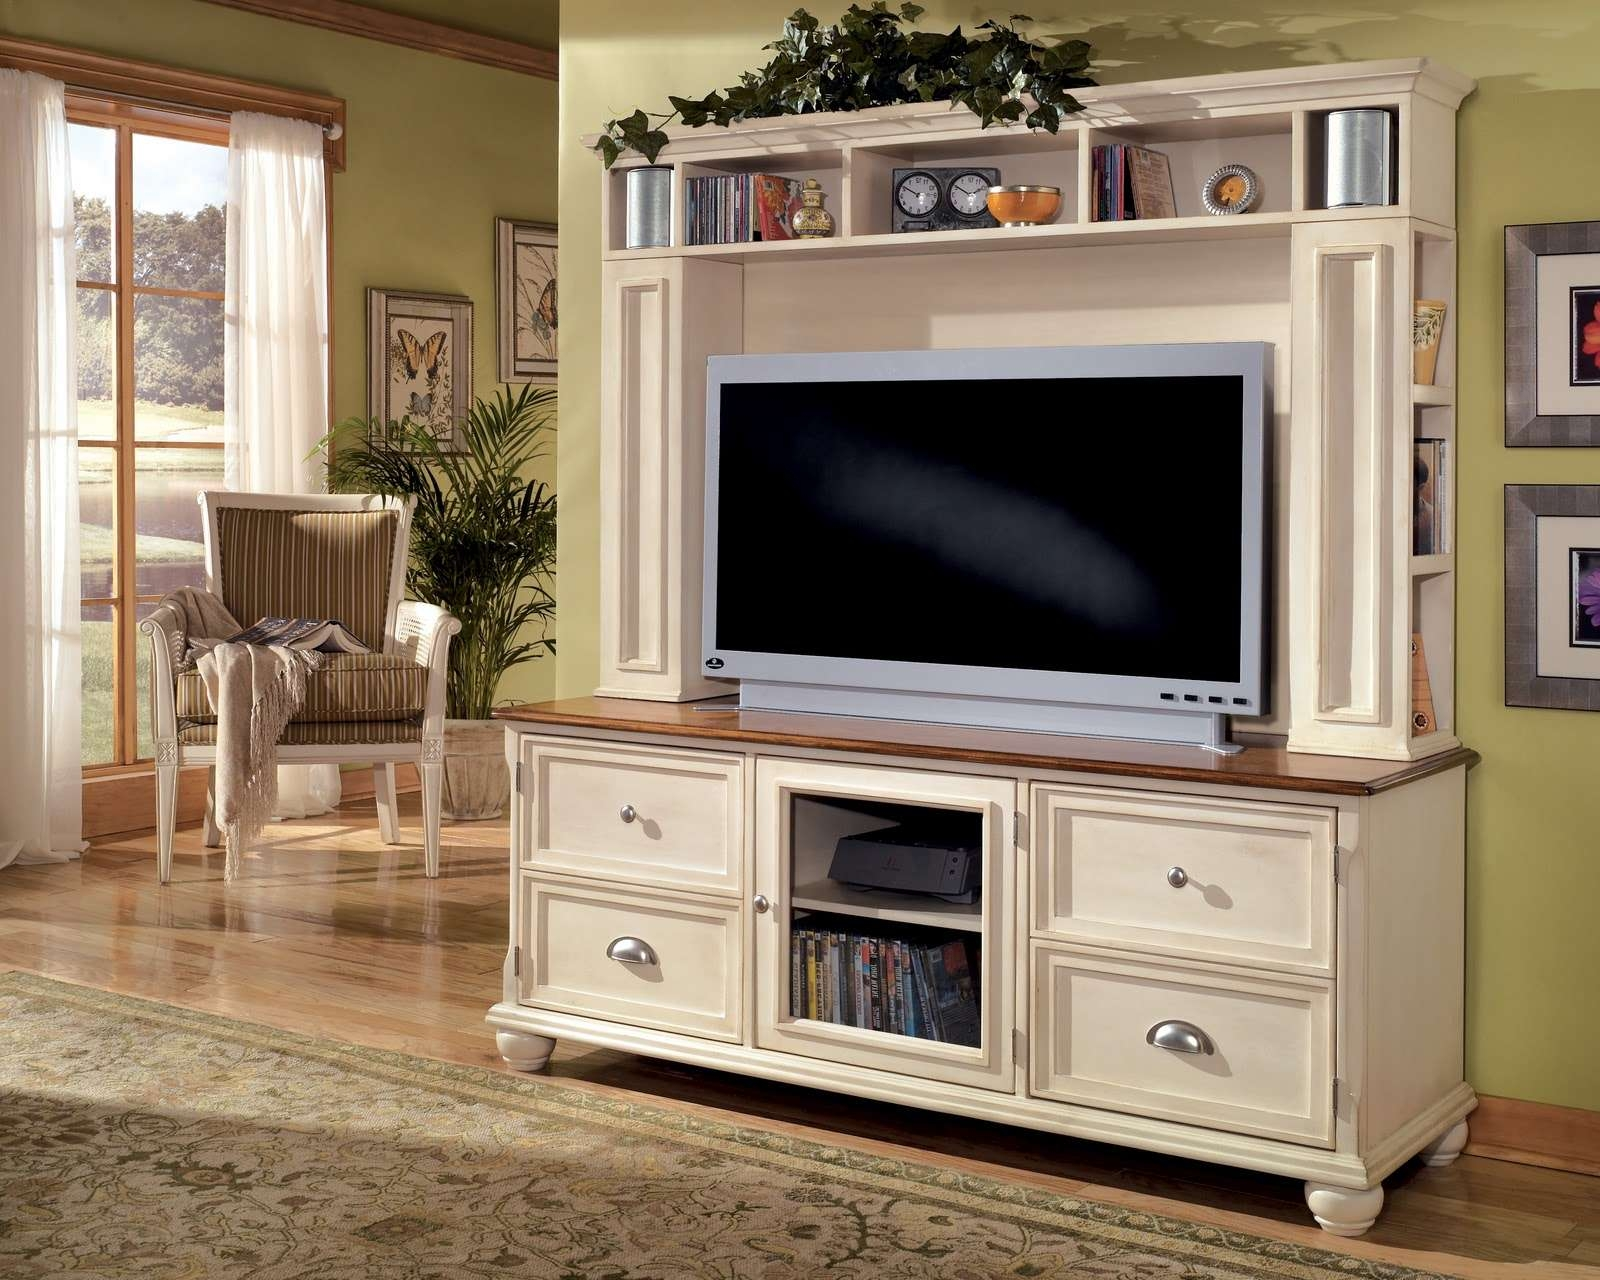 sets america of country furniture bedroom images cupboard style sierren